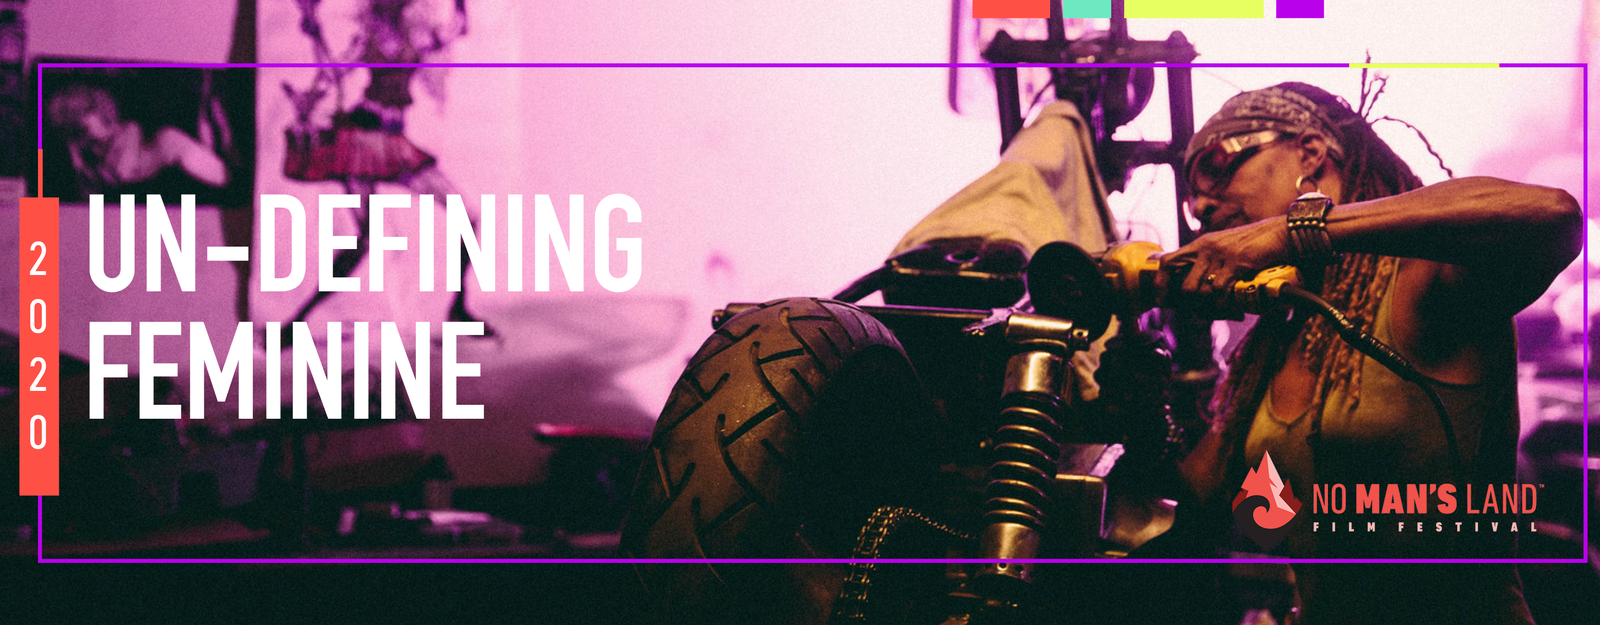 2020 Un-Defining Feminine: No Man's Land Film Festival. Black woman with goggles on and power tools working on a motorcycle.